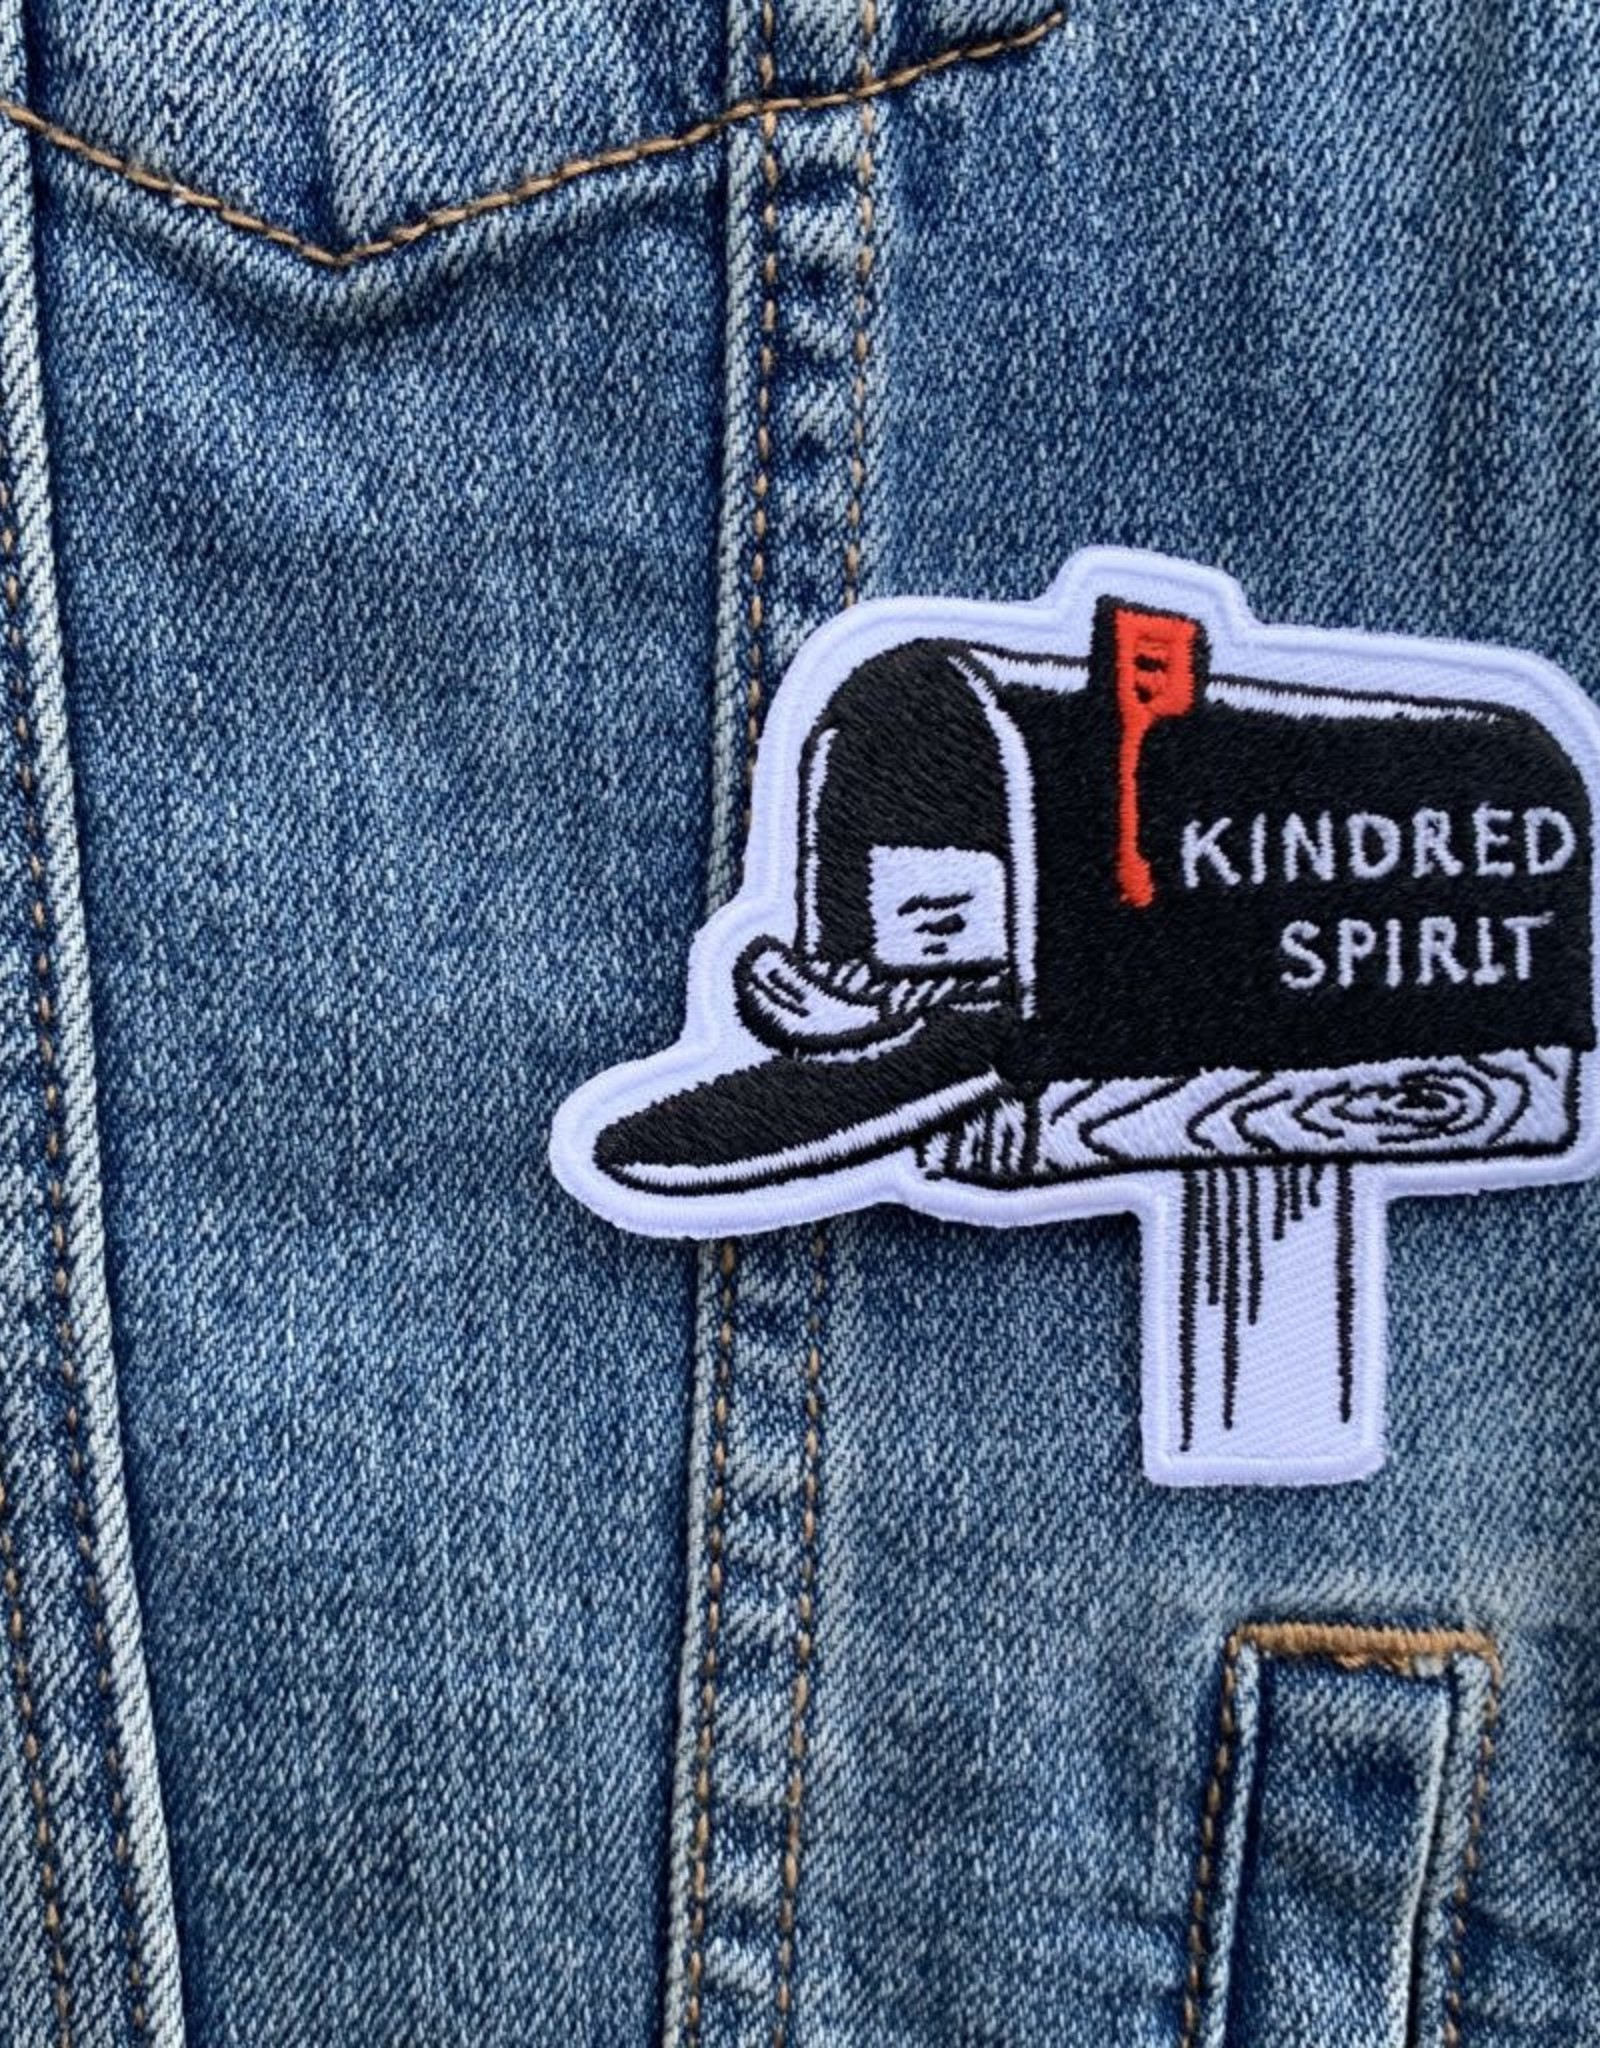 KINDRED SPIRIT PATCH